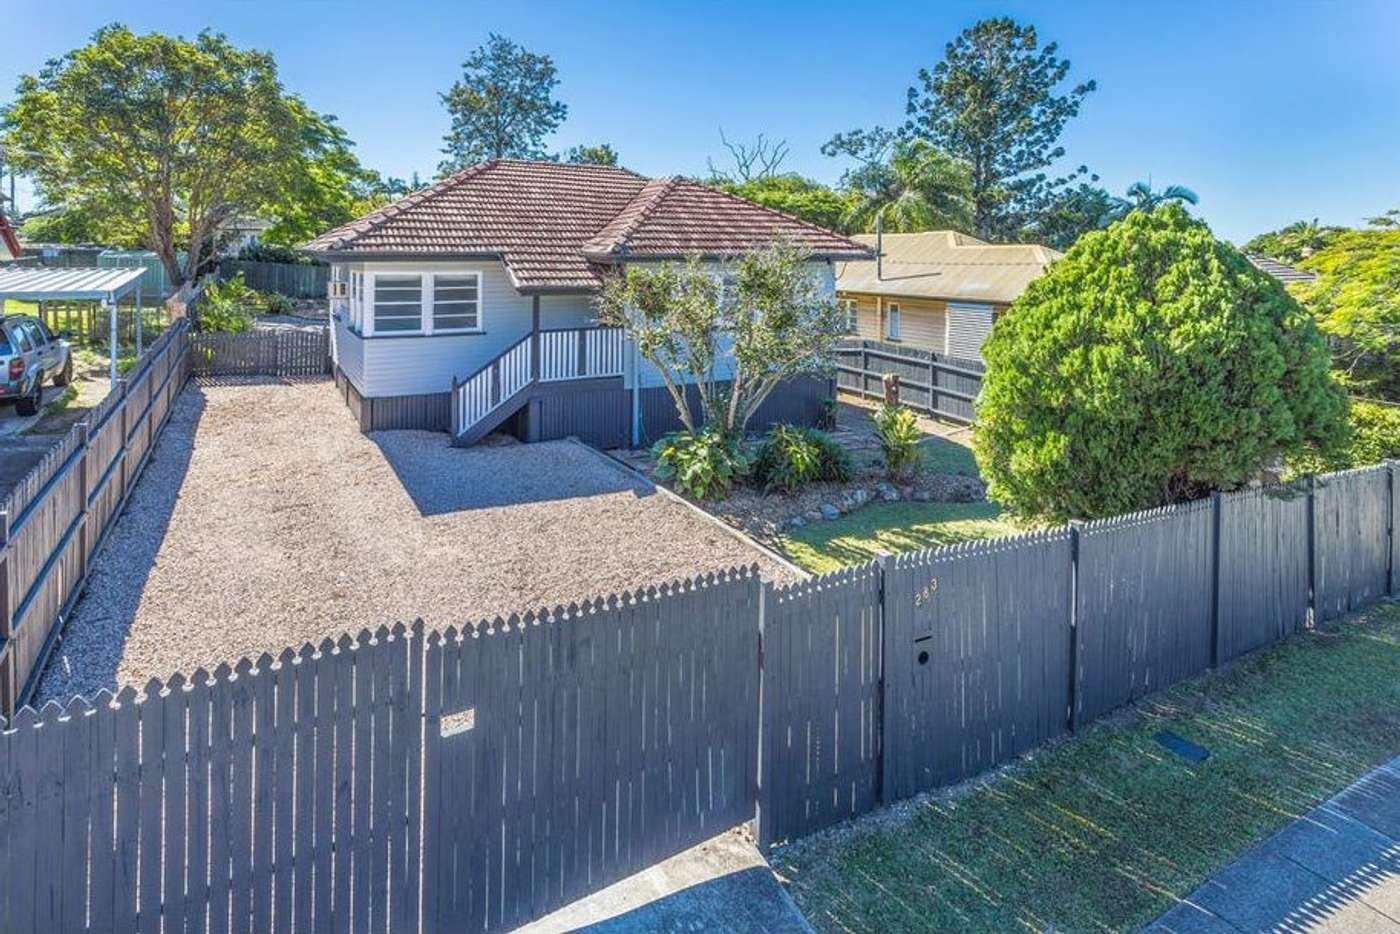 Main view of Homely house listing, 283 Hamilton Road, Chermside QLD 4032